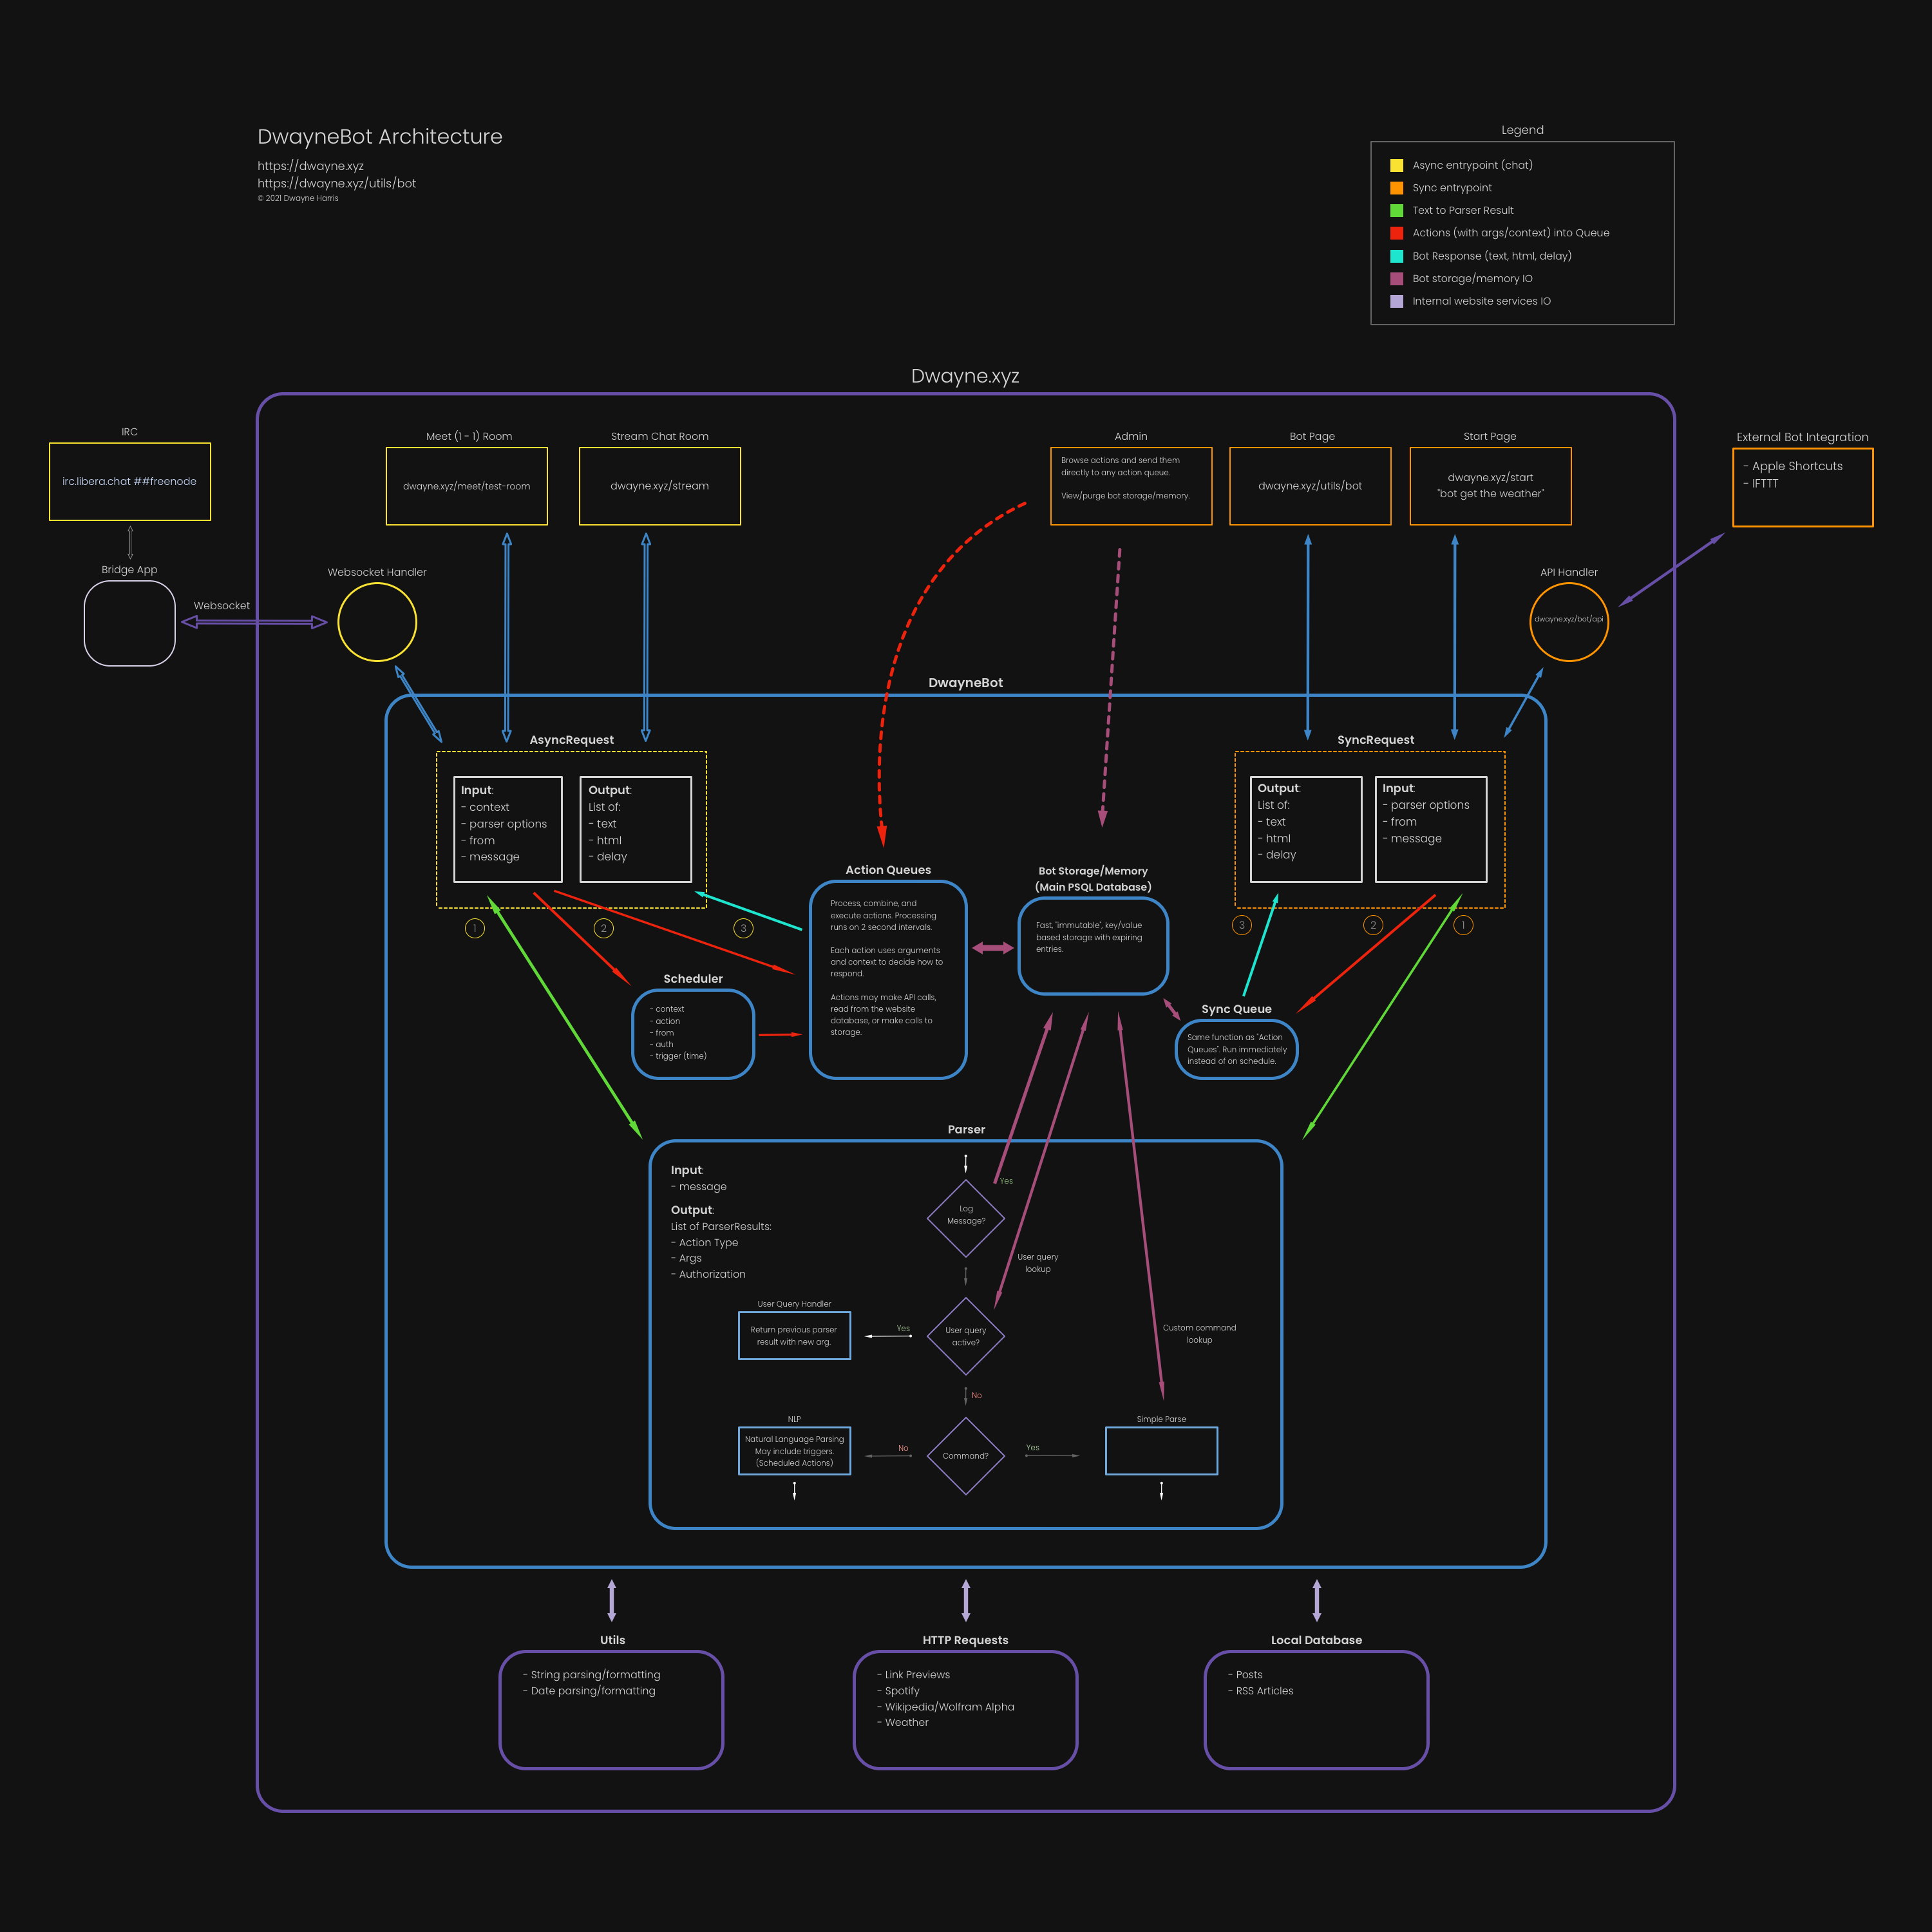 A diagram explaining the different parts of the DwayneBot chat bot architecture.